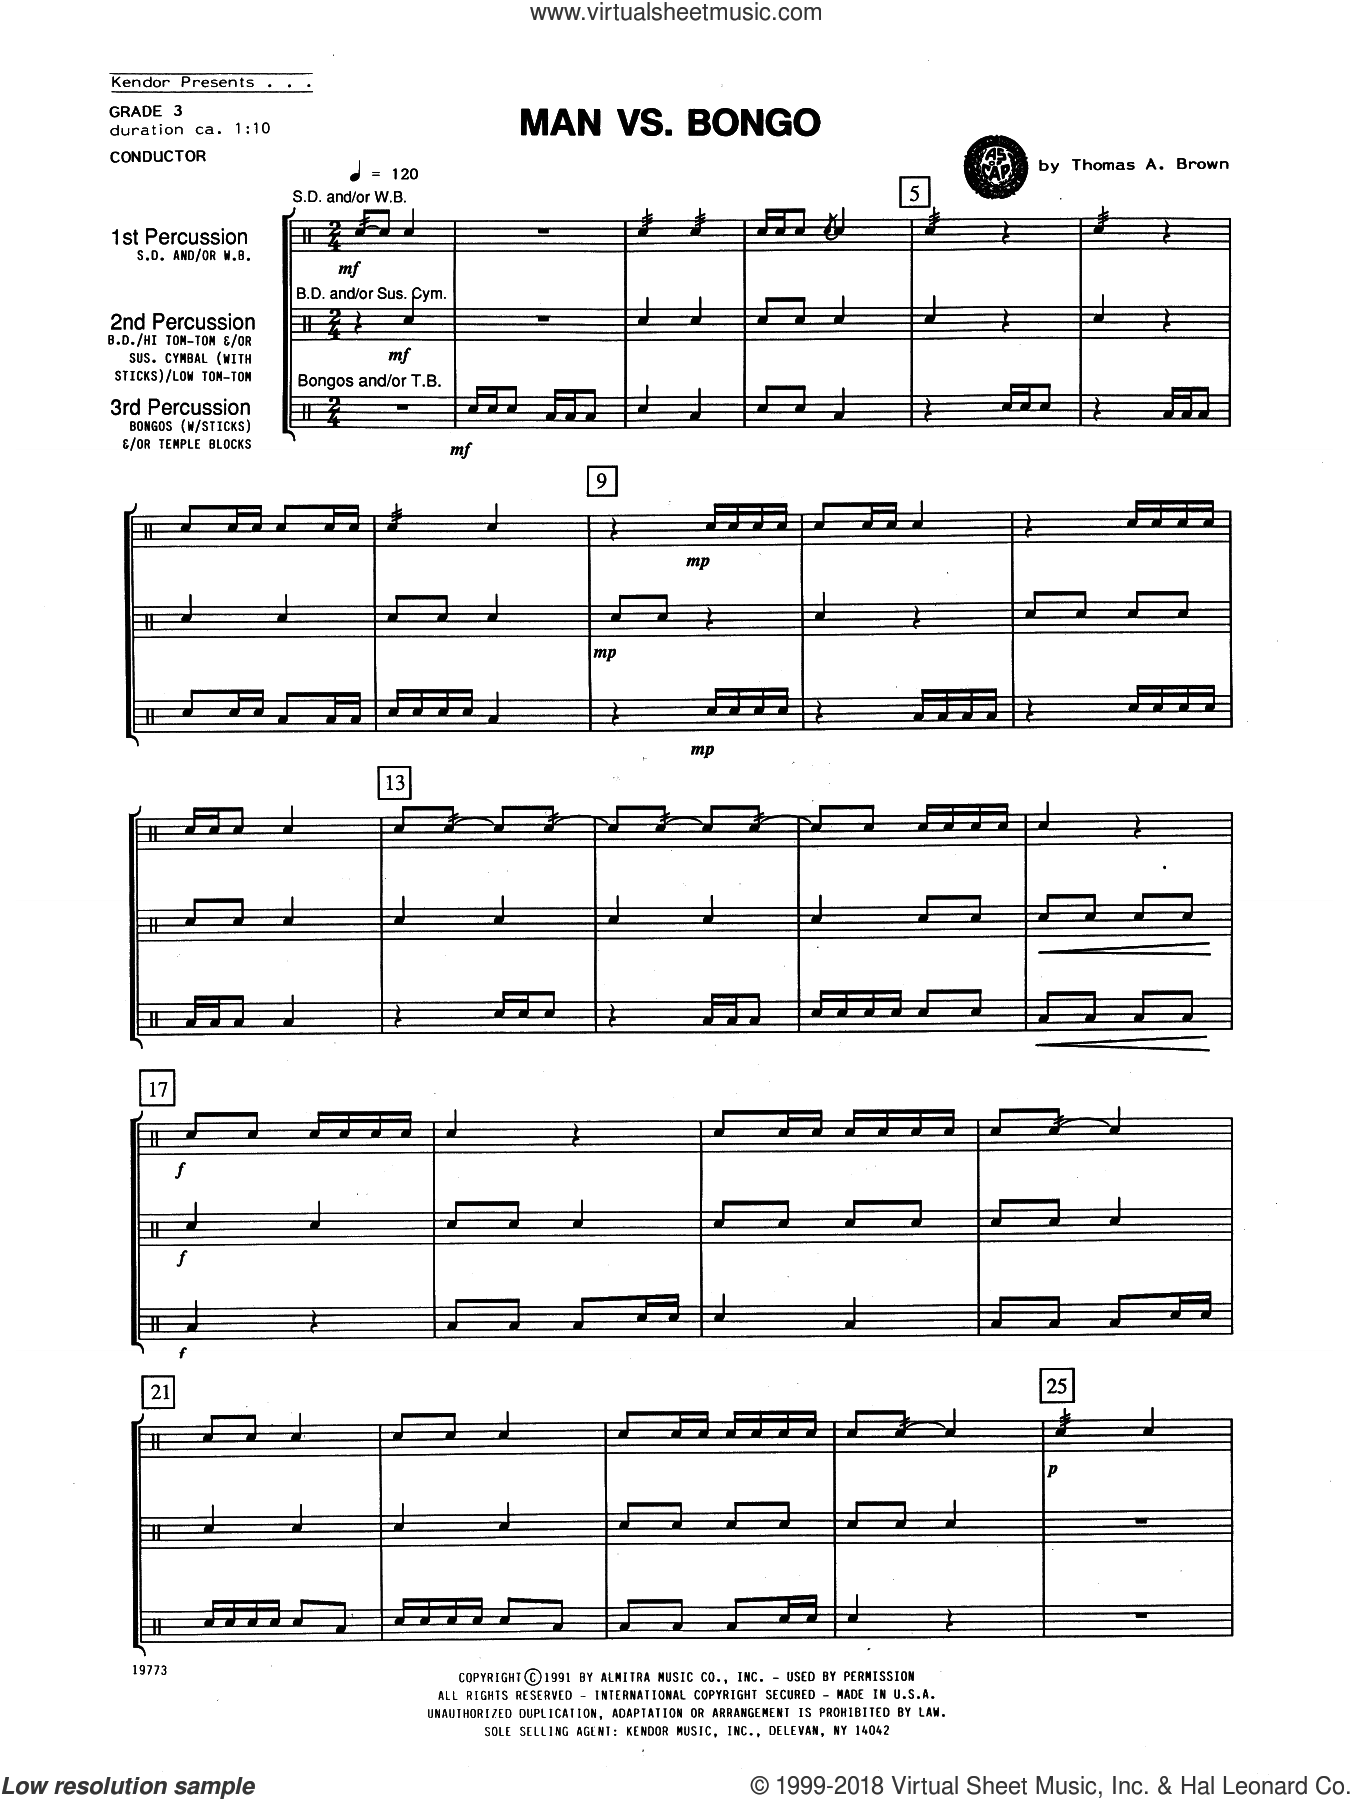 Man Vs. Bongo (COMPLETE) sheet music for percussions by Tom Brown, intermediate skill level